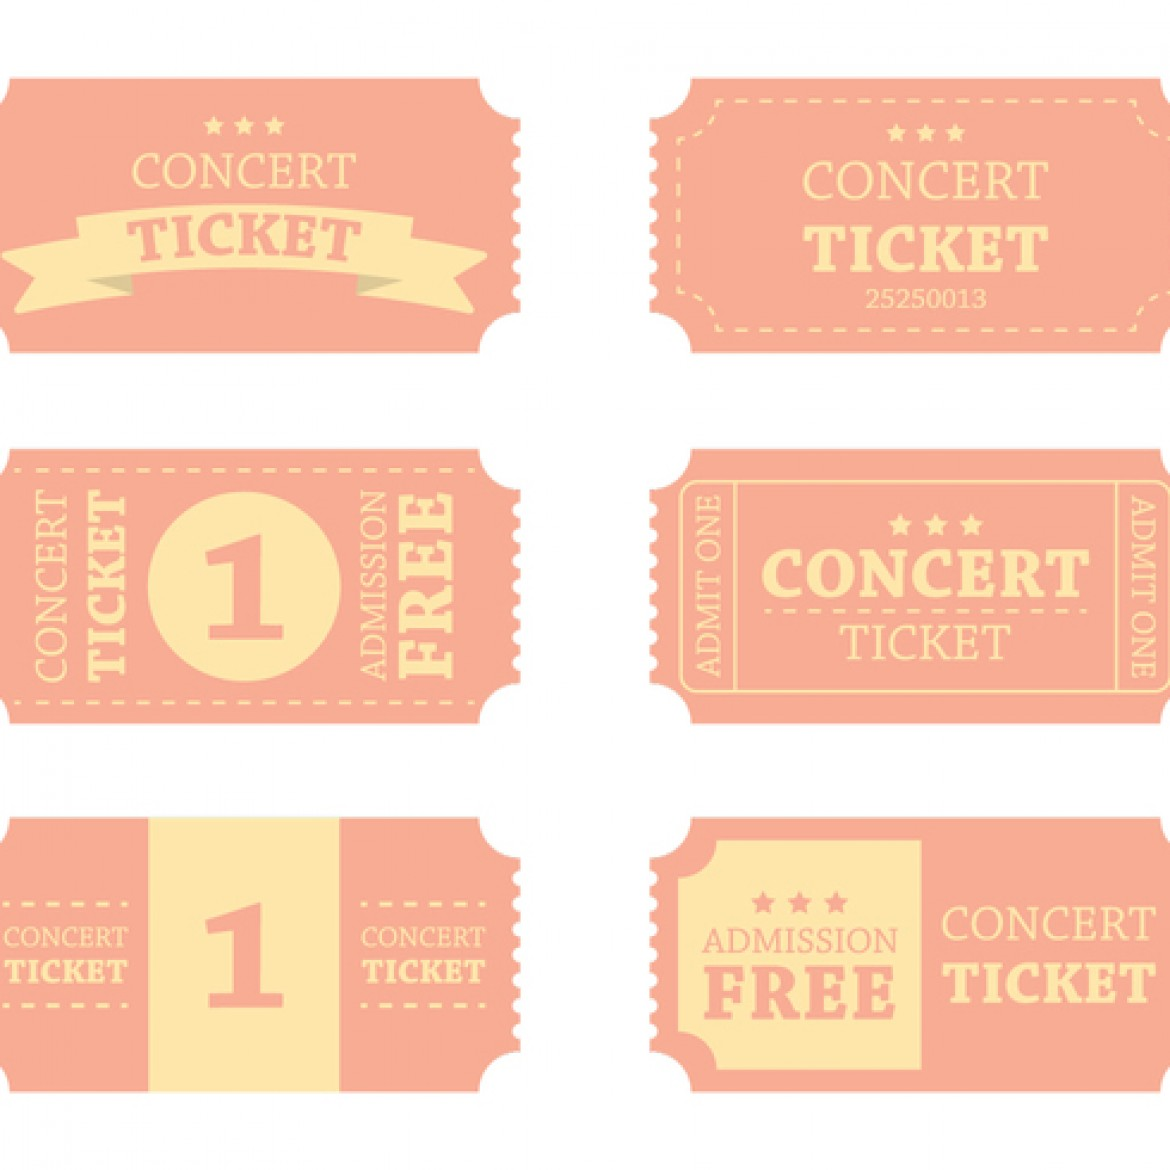 Blank concert ticket template clipart best for Concert ticket template free